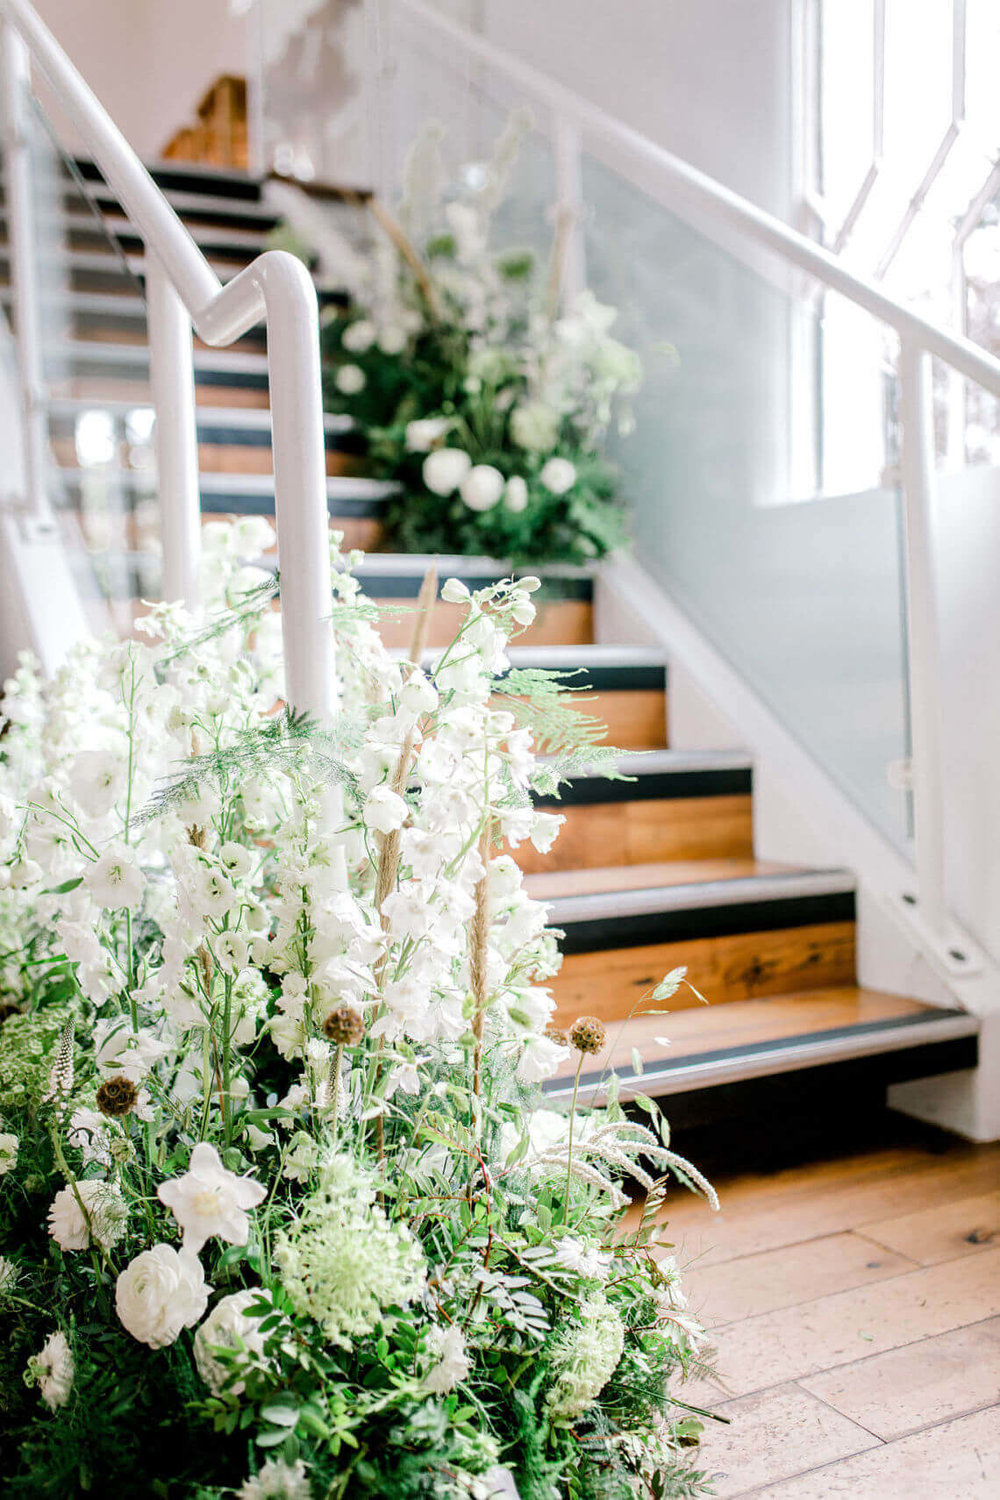 essex-wedding-planner-neutral-stairway-flower-installation.jpg